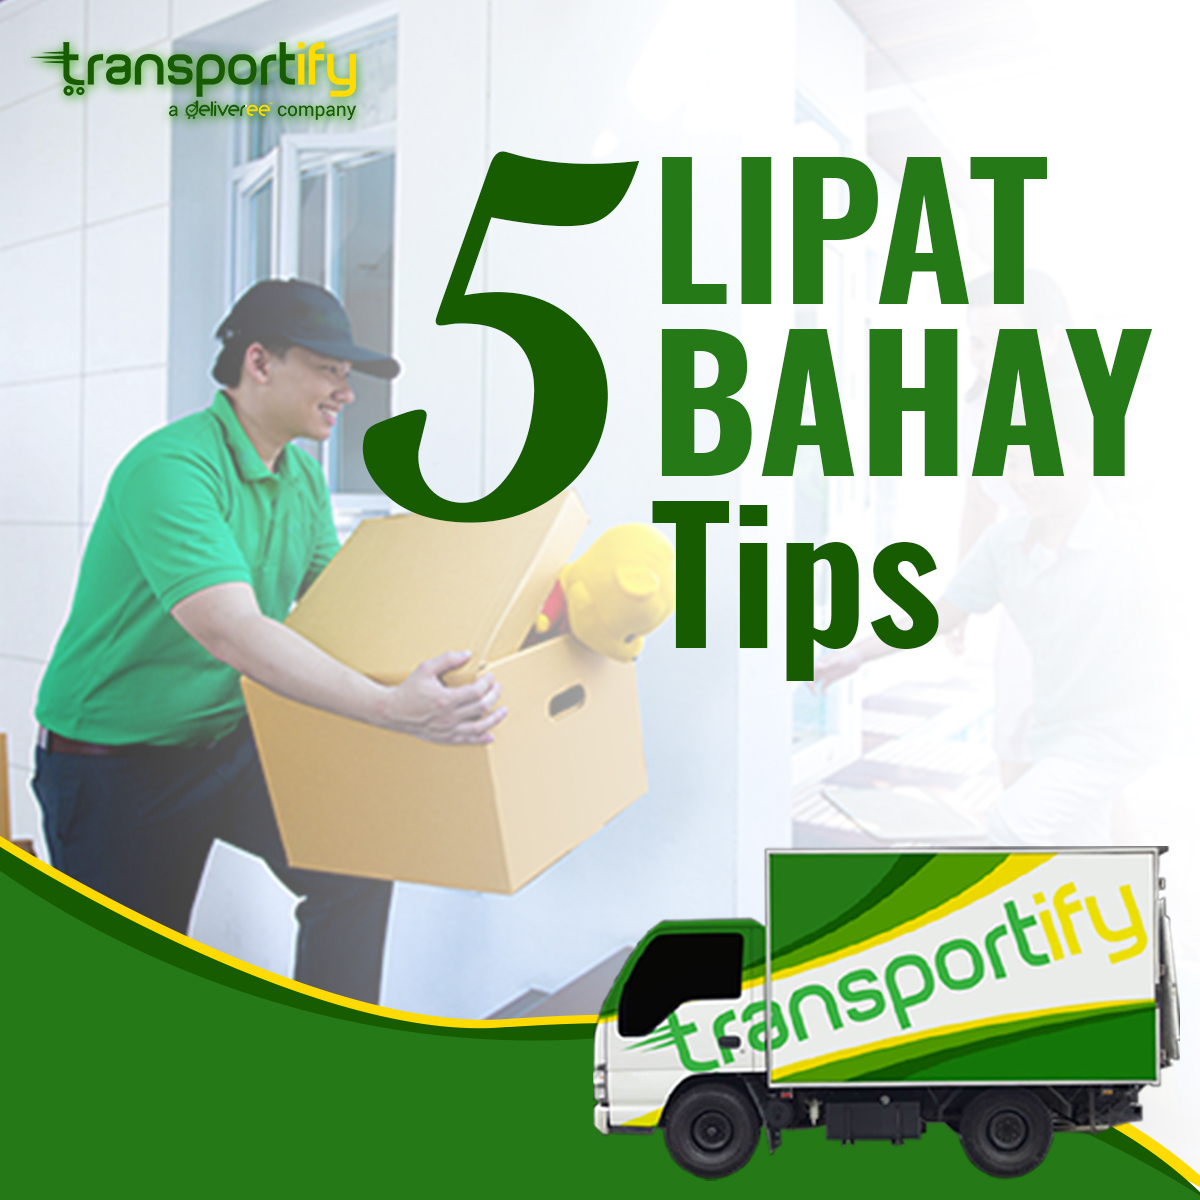 transportify, lipat bahay, transportation delivery services, on demand delivery app, delivery manila